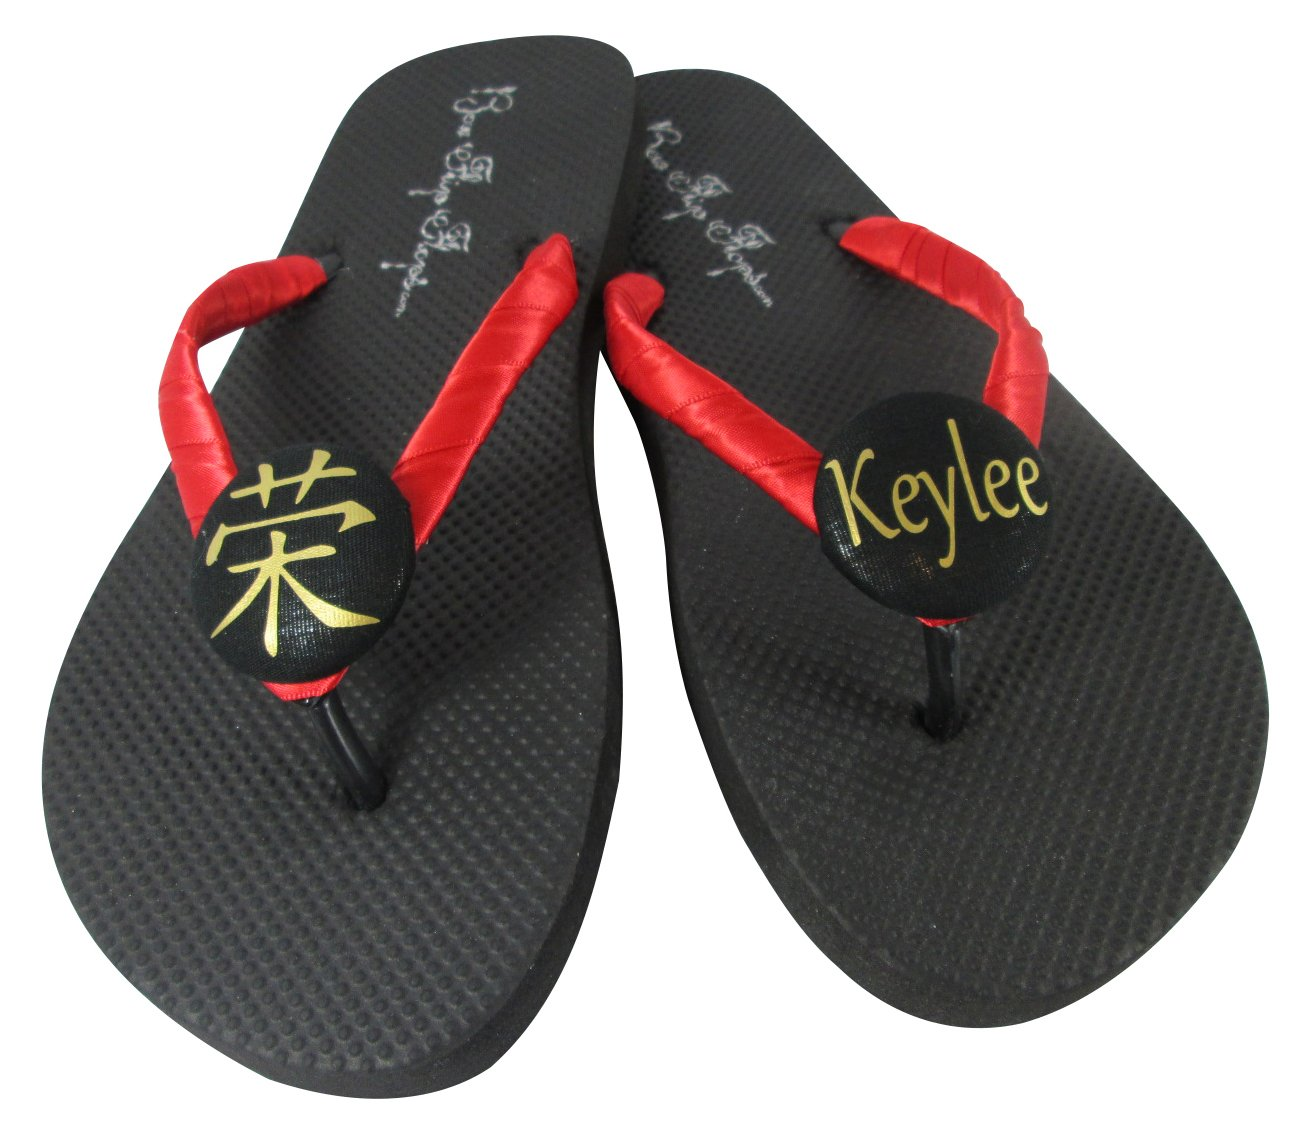 632a558a9aab Amazon.com  Karate Personalized Flip Flops